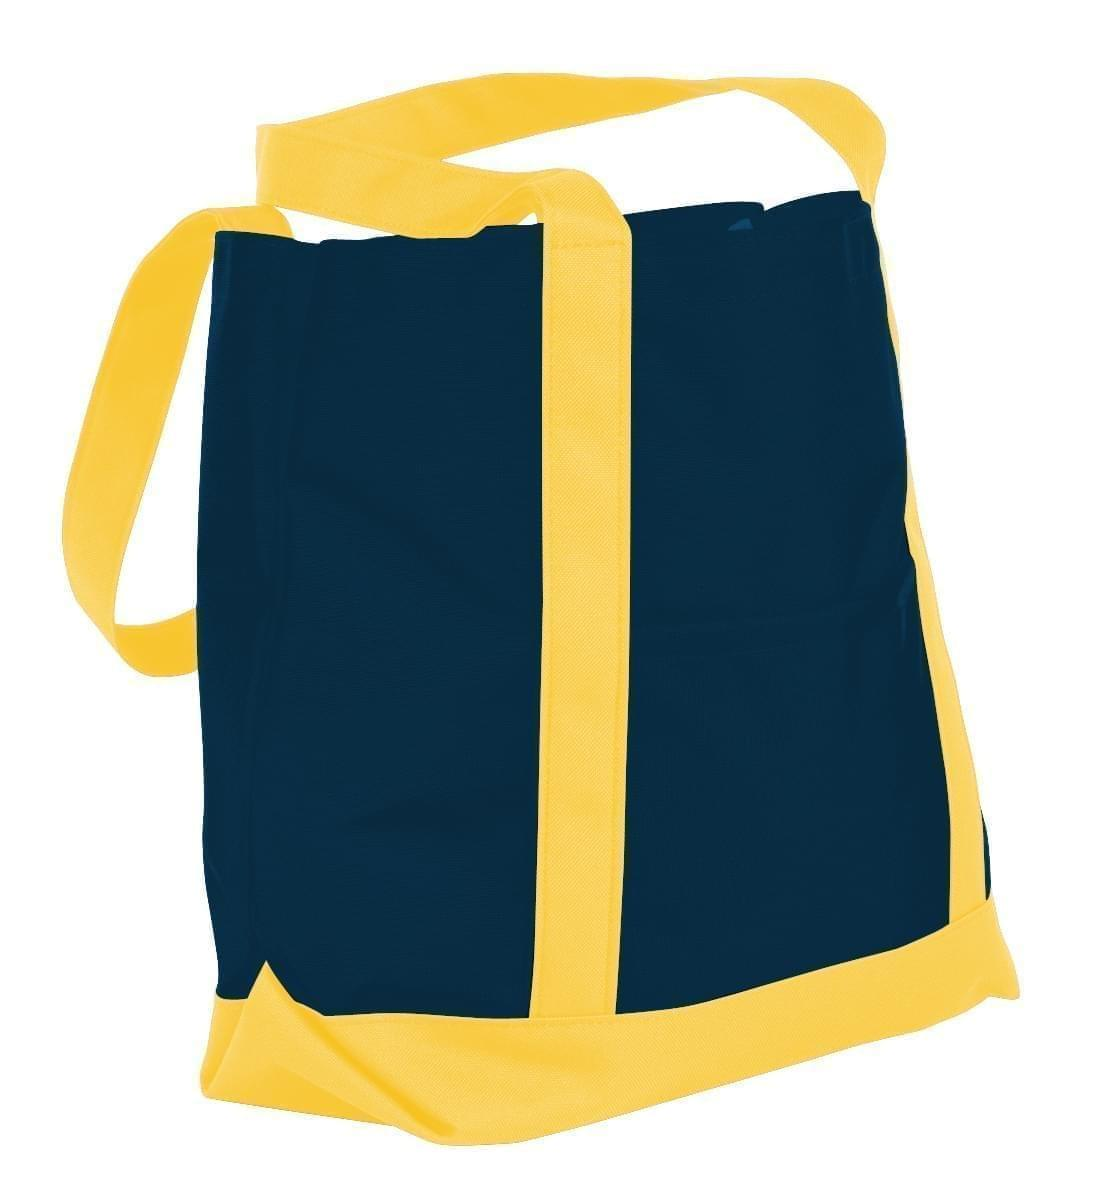 USA Made Nylon Poly Boat Tote Bags, Navy-Gold, XAACL1UAWQ